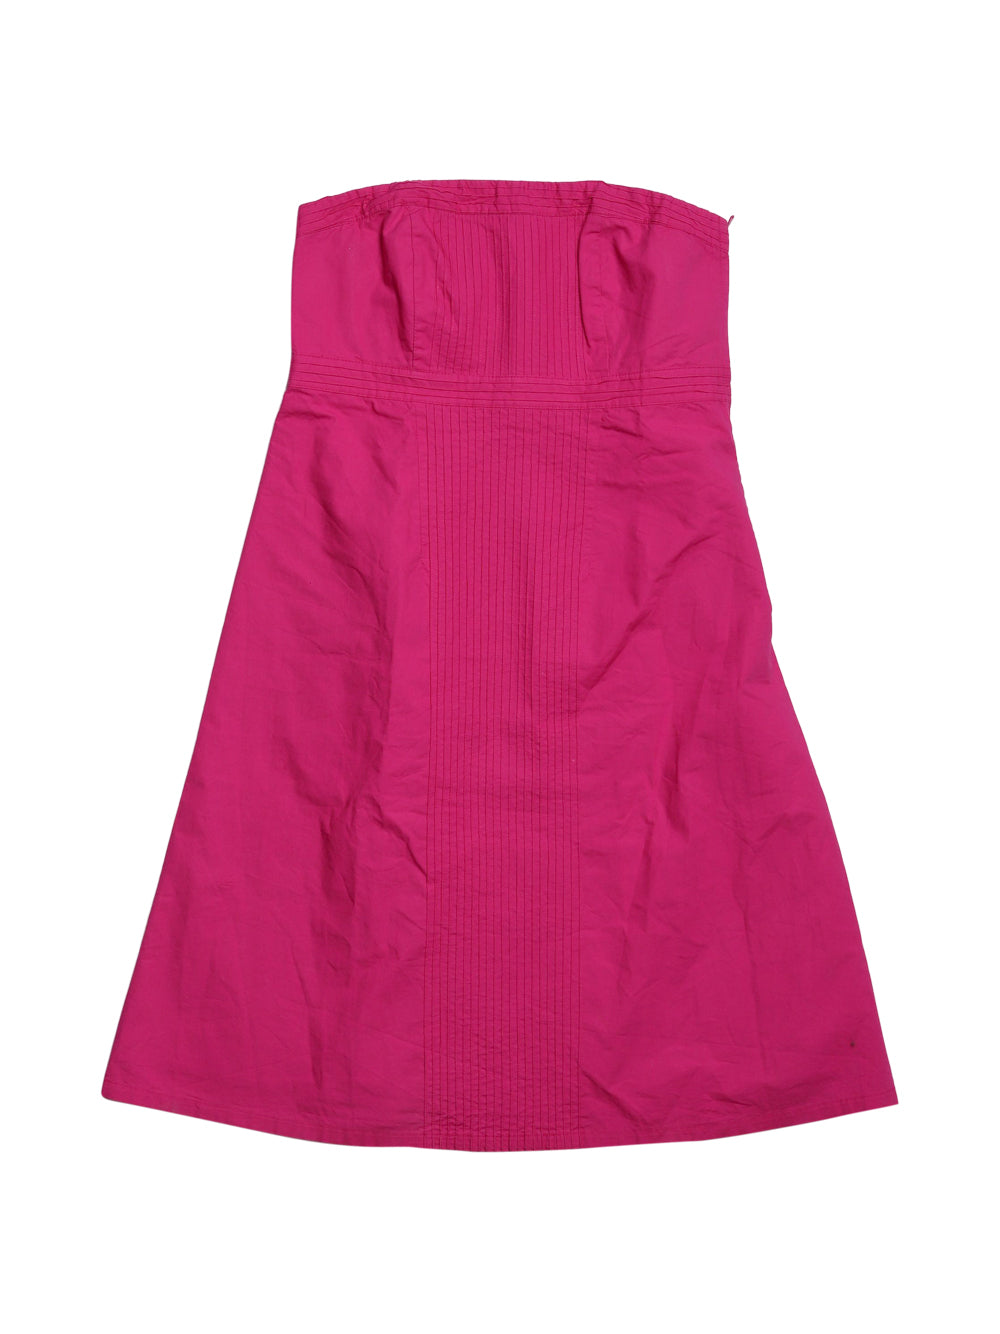 Front photo of Preloved Gap Pink Woman's dress - size 8/S